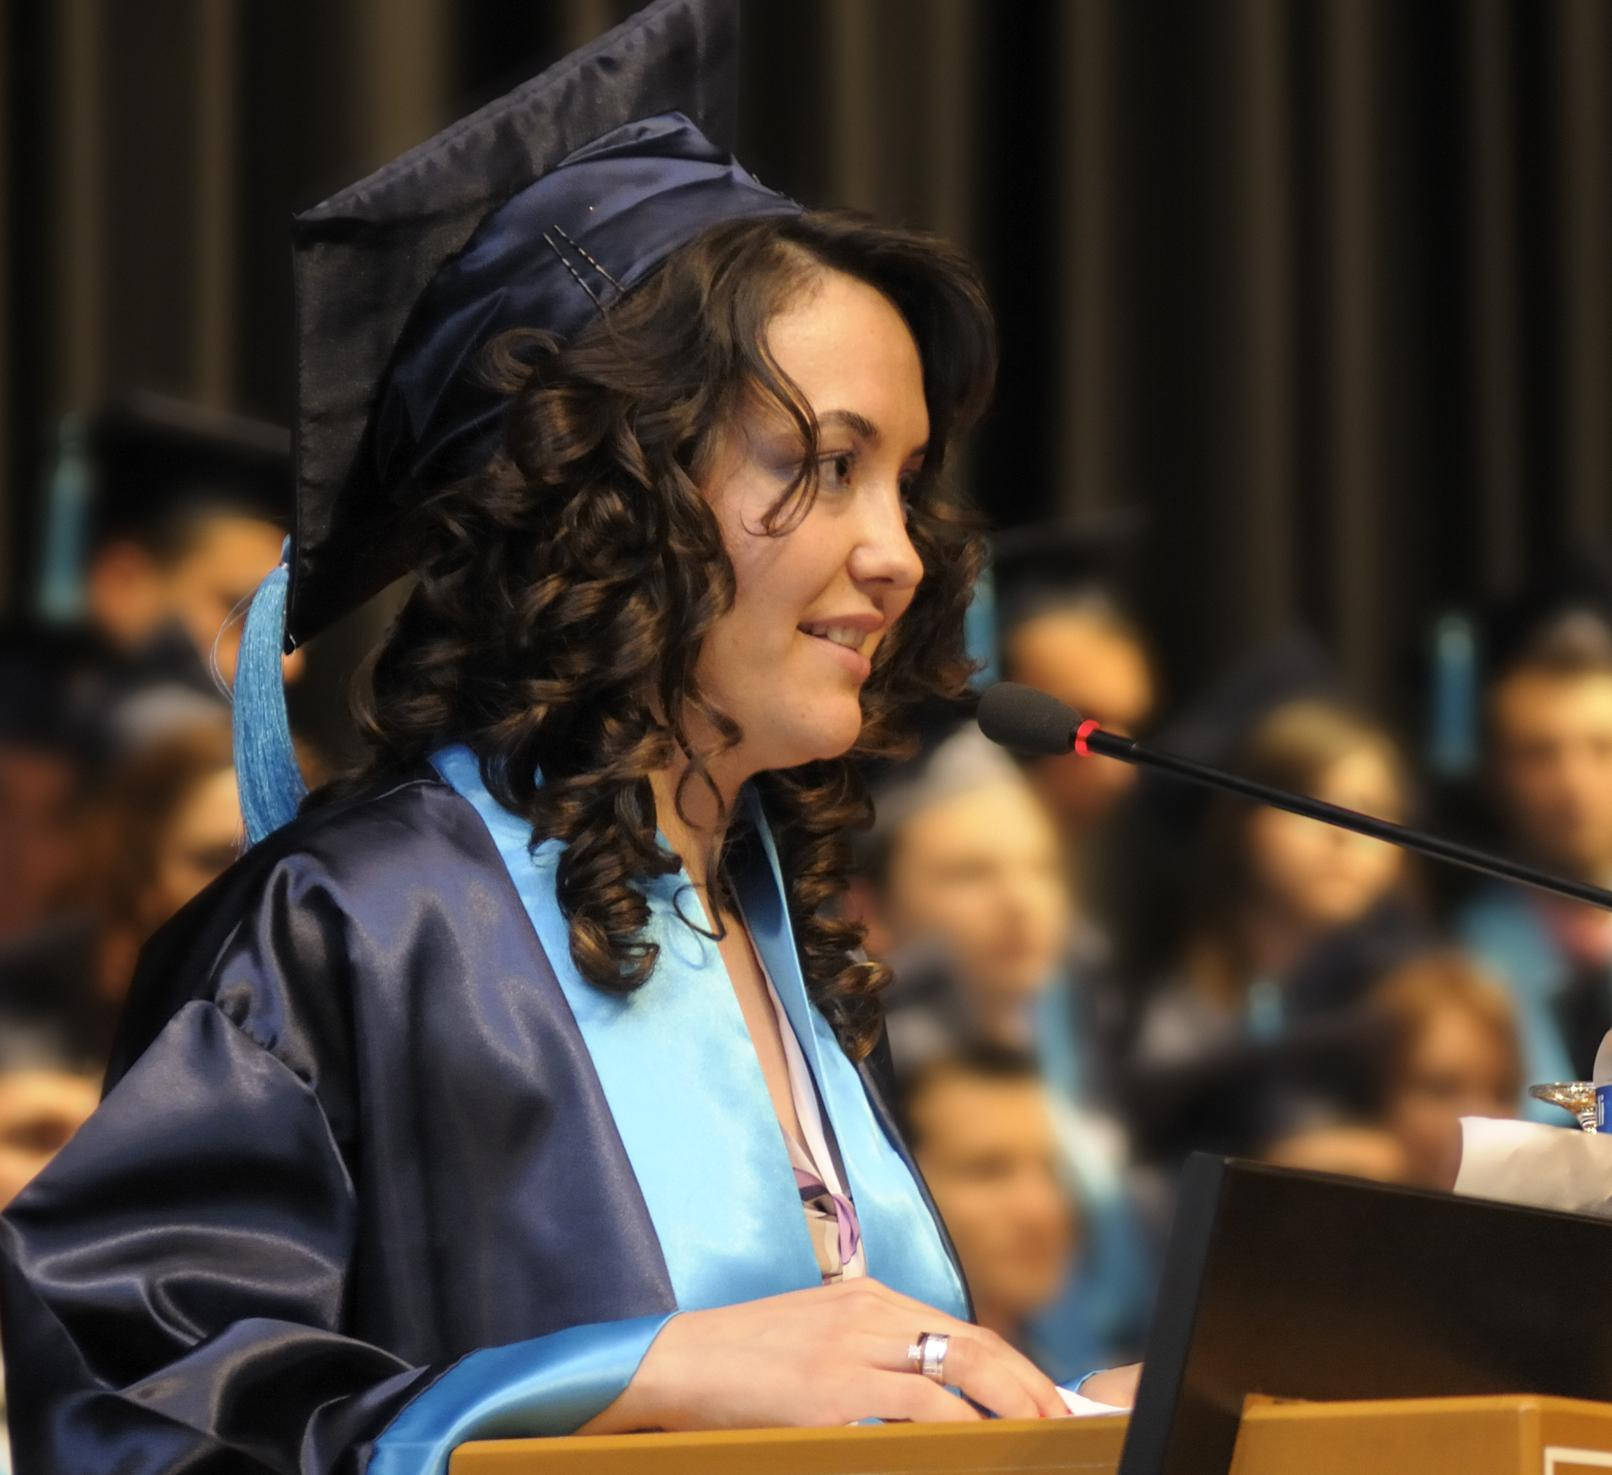 young woman speaking at college graduation